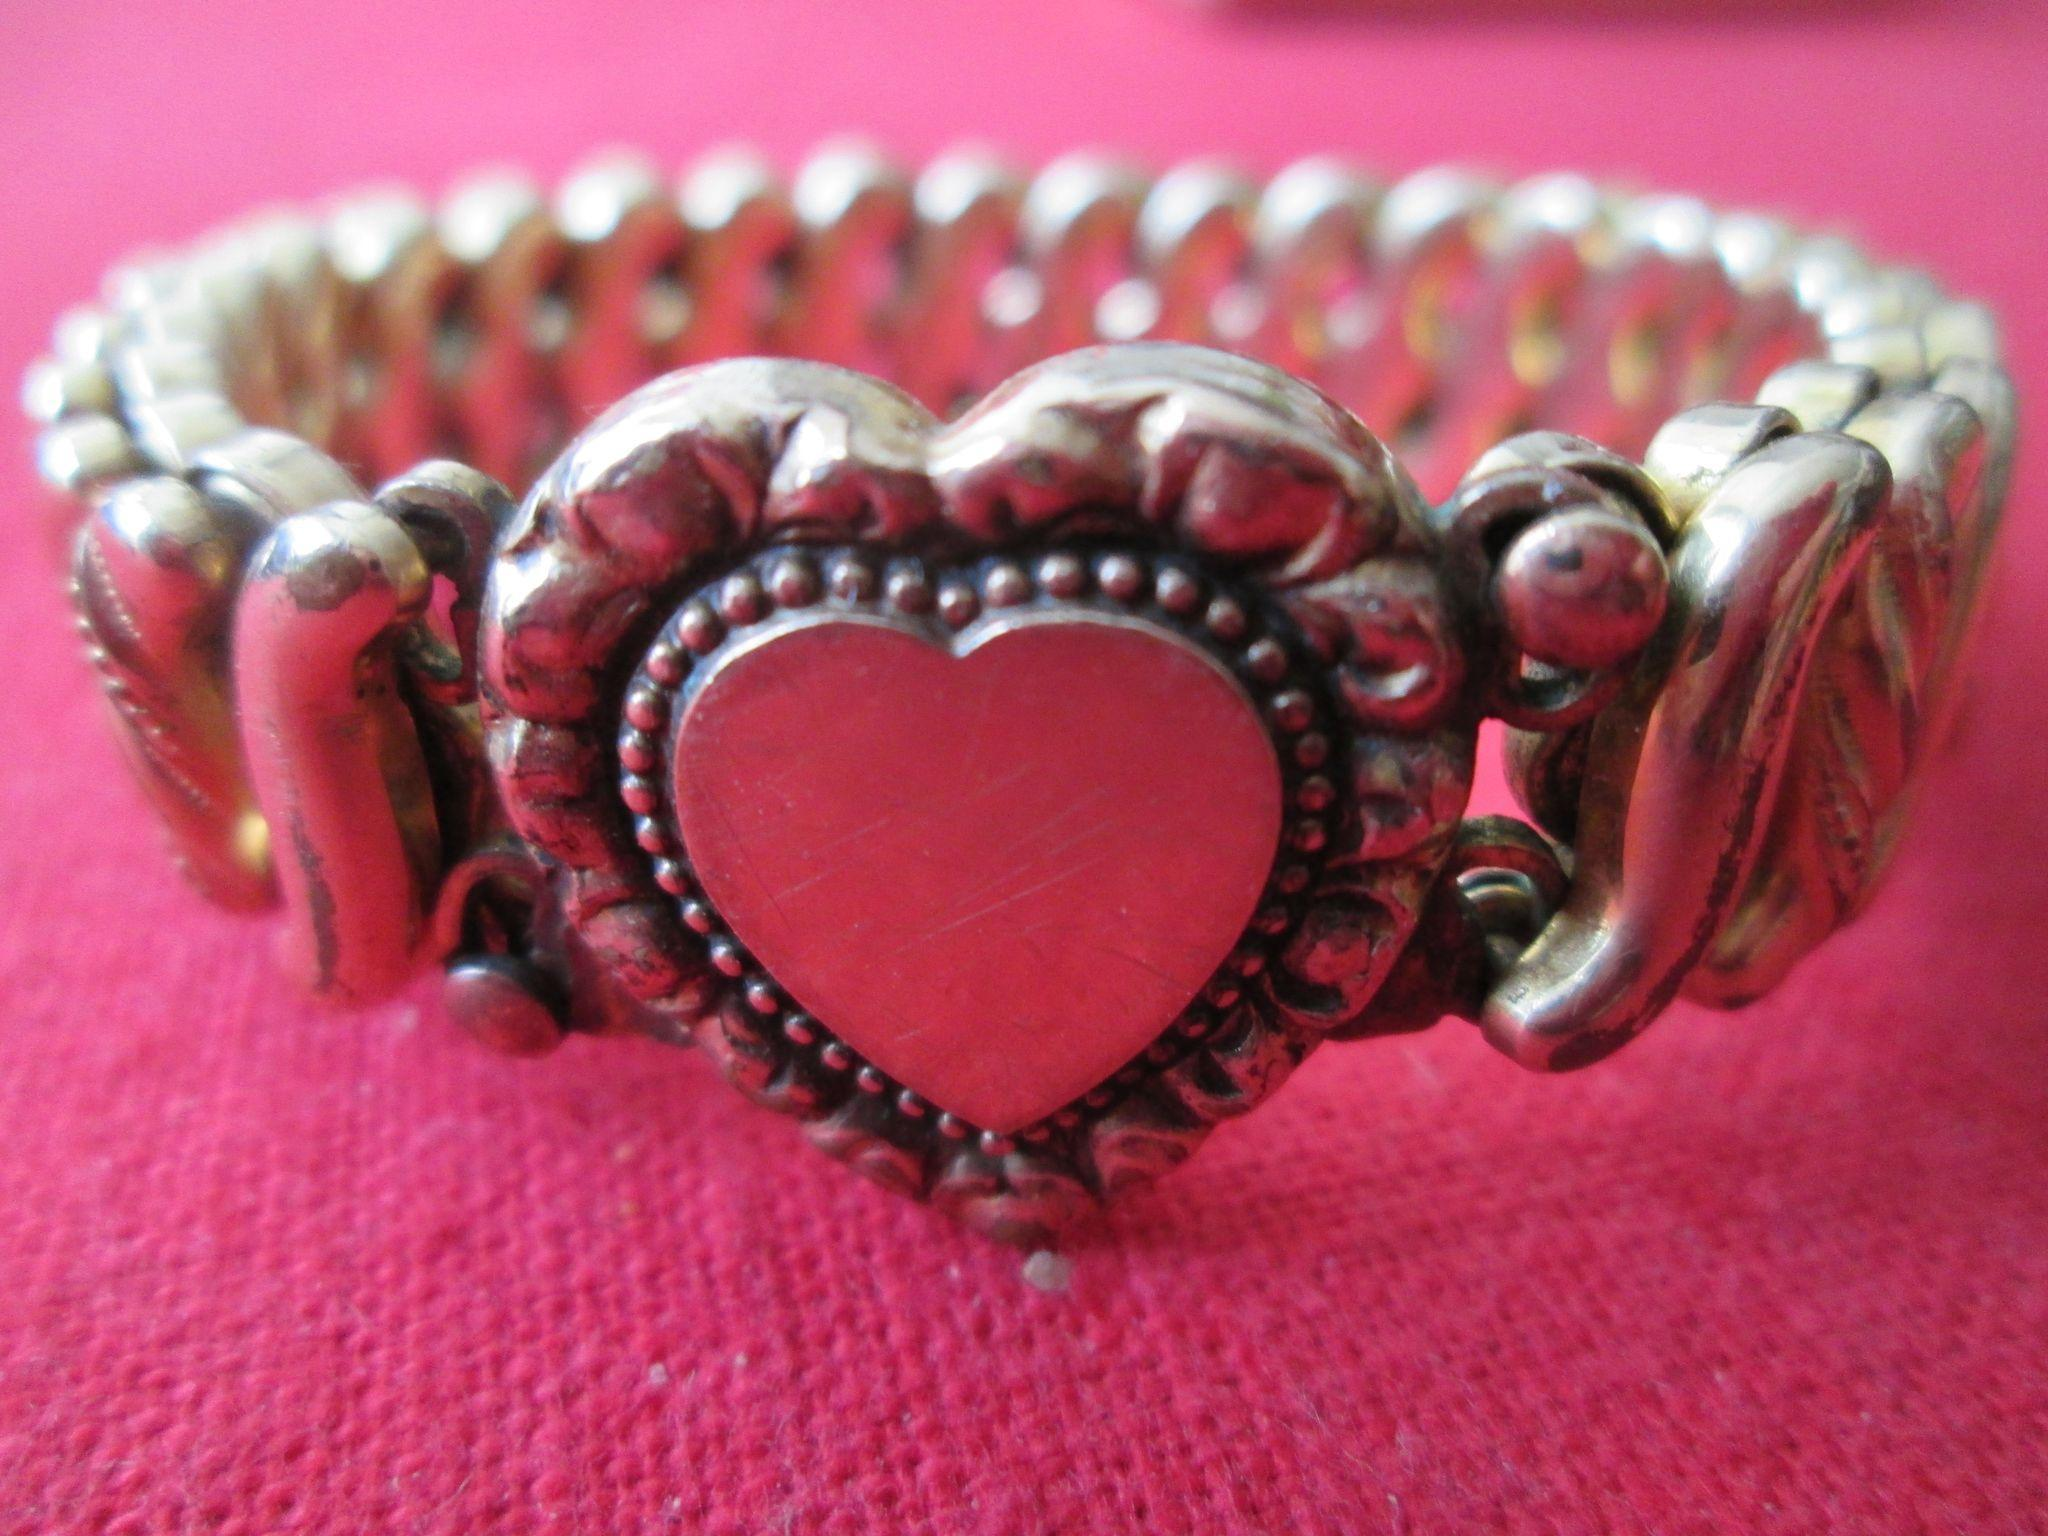 Adjustable Heart Bracelet by D.F. Briggs Co. (1901) in Original Box